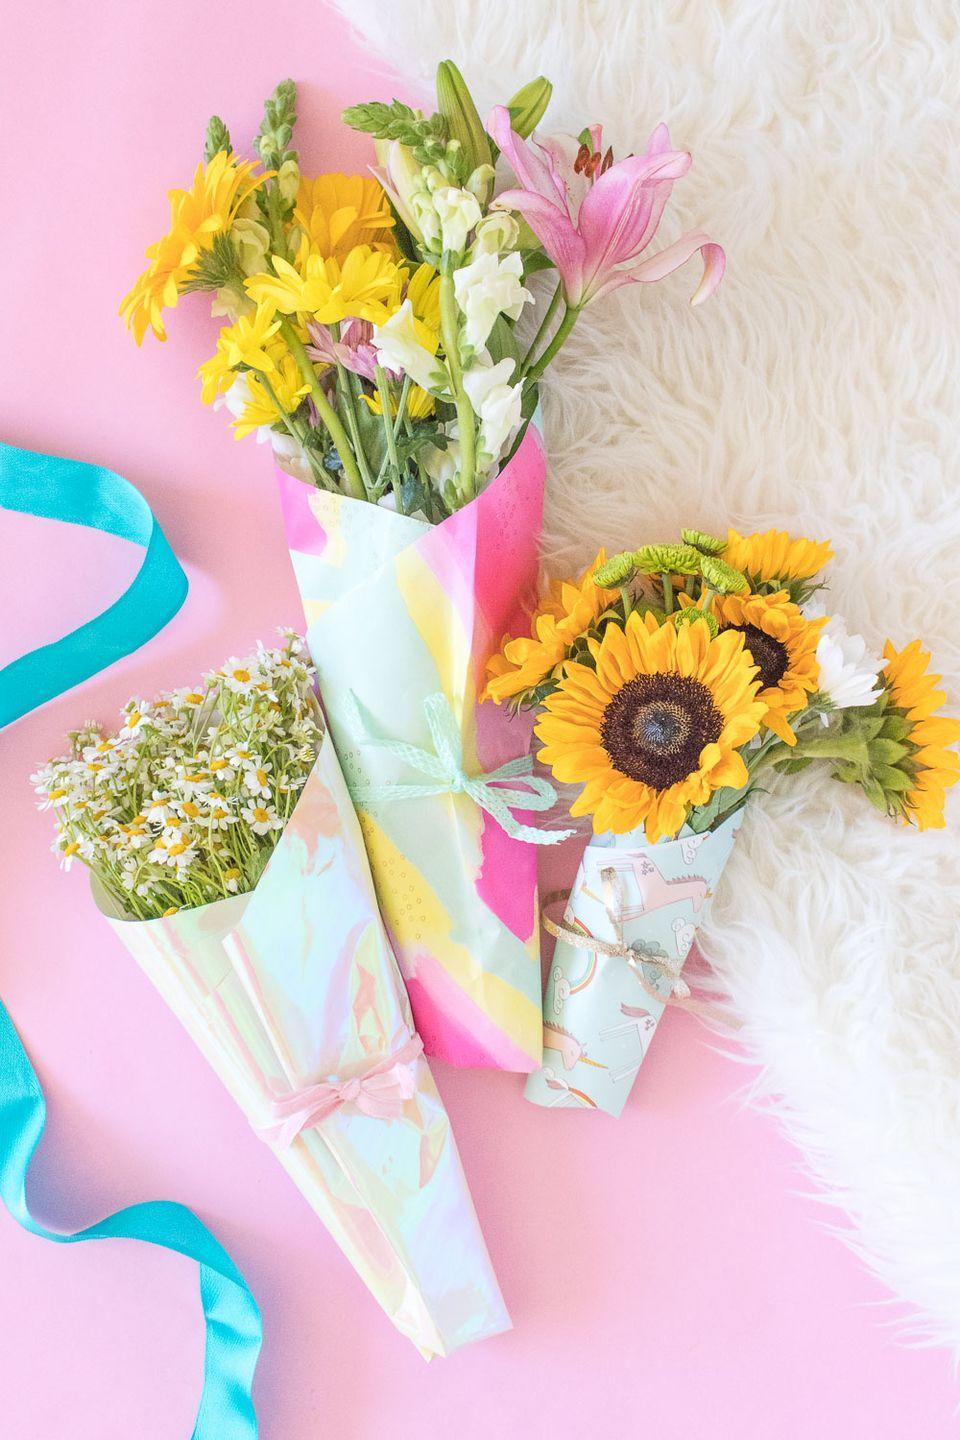 """<p>Turn your garden's flowers into a bouquet fit for a queen by wrapping them in patterned paper. </p><p><em><a href=""""https://www.clubcrafted.com/2018/05/03/how-to-wrap-a-bouquet-of-flowers-wrapping-paper/"""" rel=""""nofollow noopener"""" target=""""_blank"""" data-ylk=""""slk:Get the tutorial at Club Crafted »"""" class=""""link rapid-noclick-resp"""">Get the tutorial at Club Crafted »</a></em> </p>"""